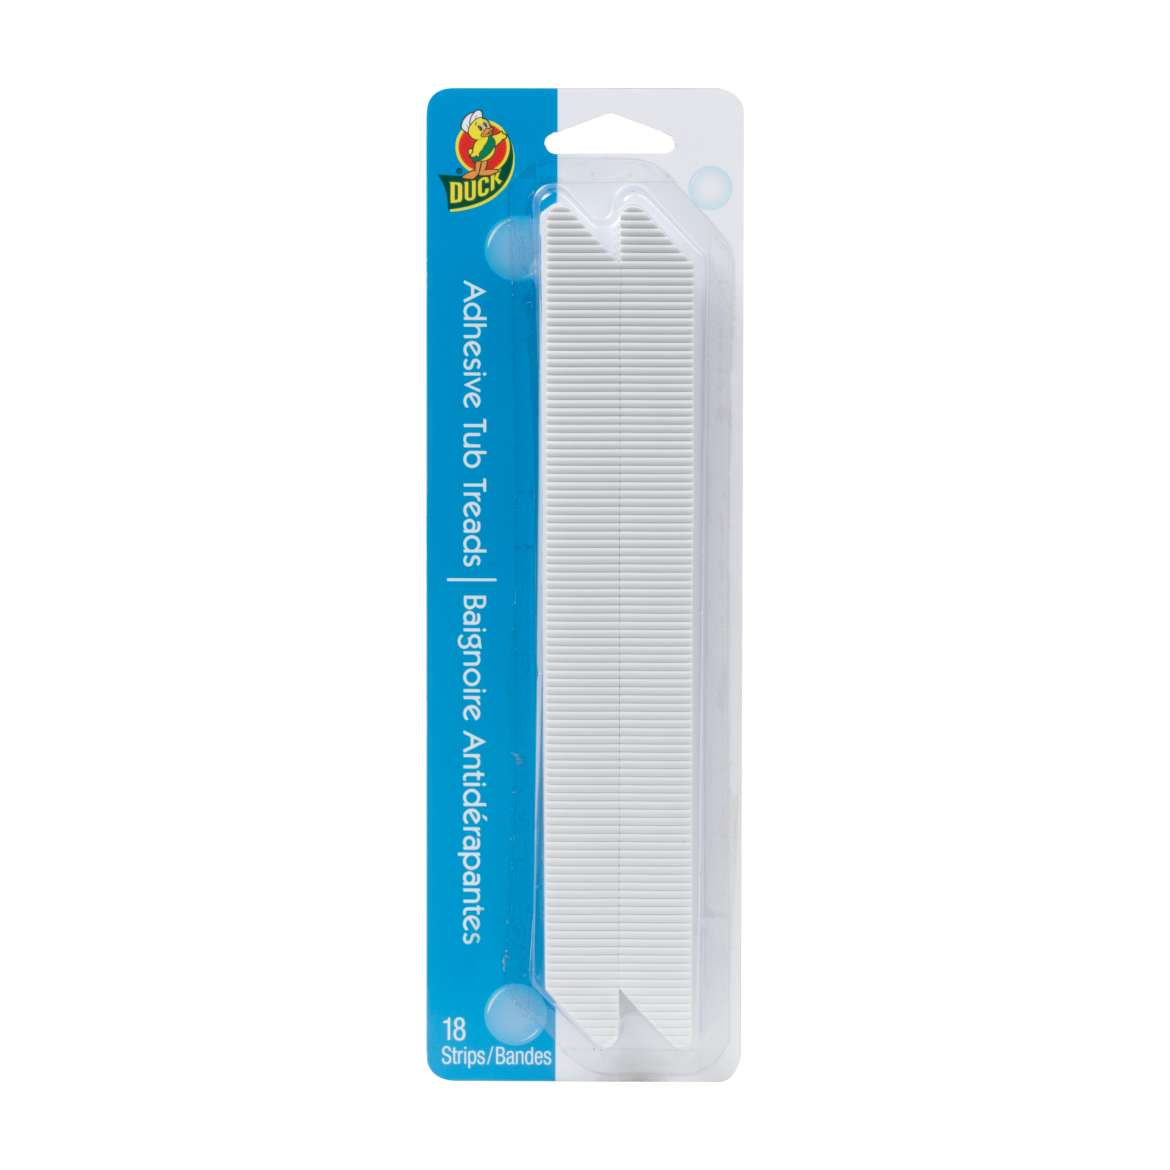 Duck® Brand Adhesive Tub Treads - White, 18 pk, 8.75 in. x .75 in. Image